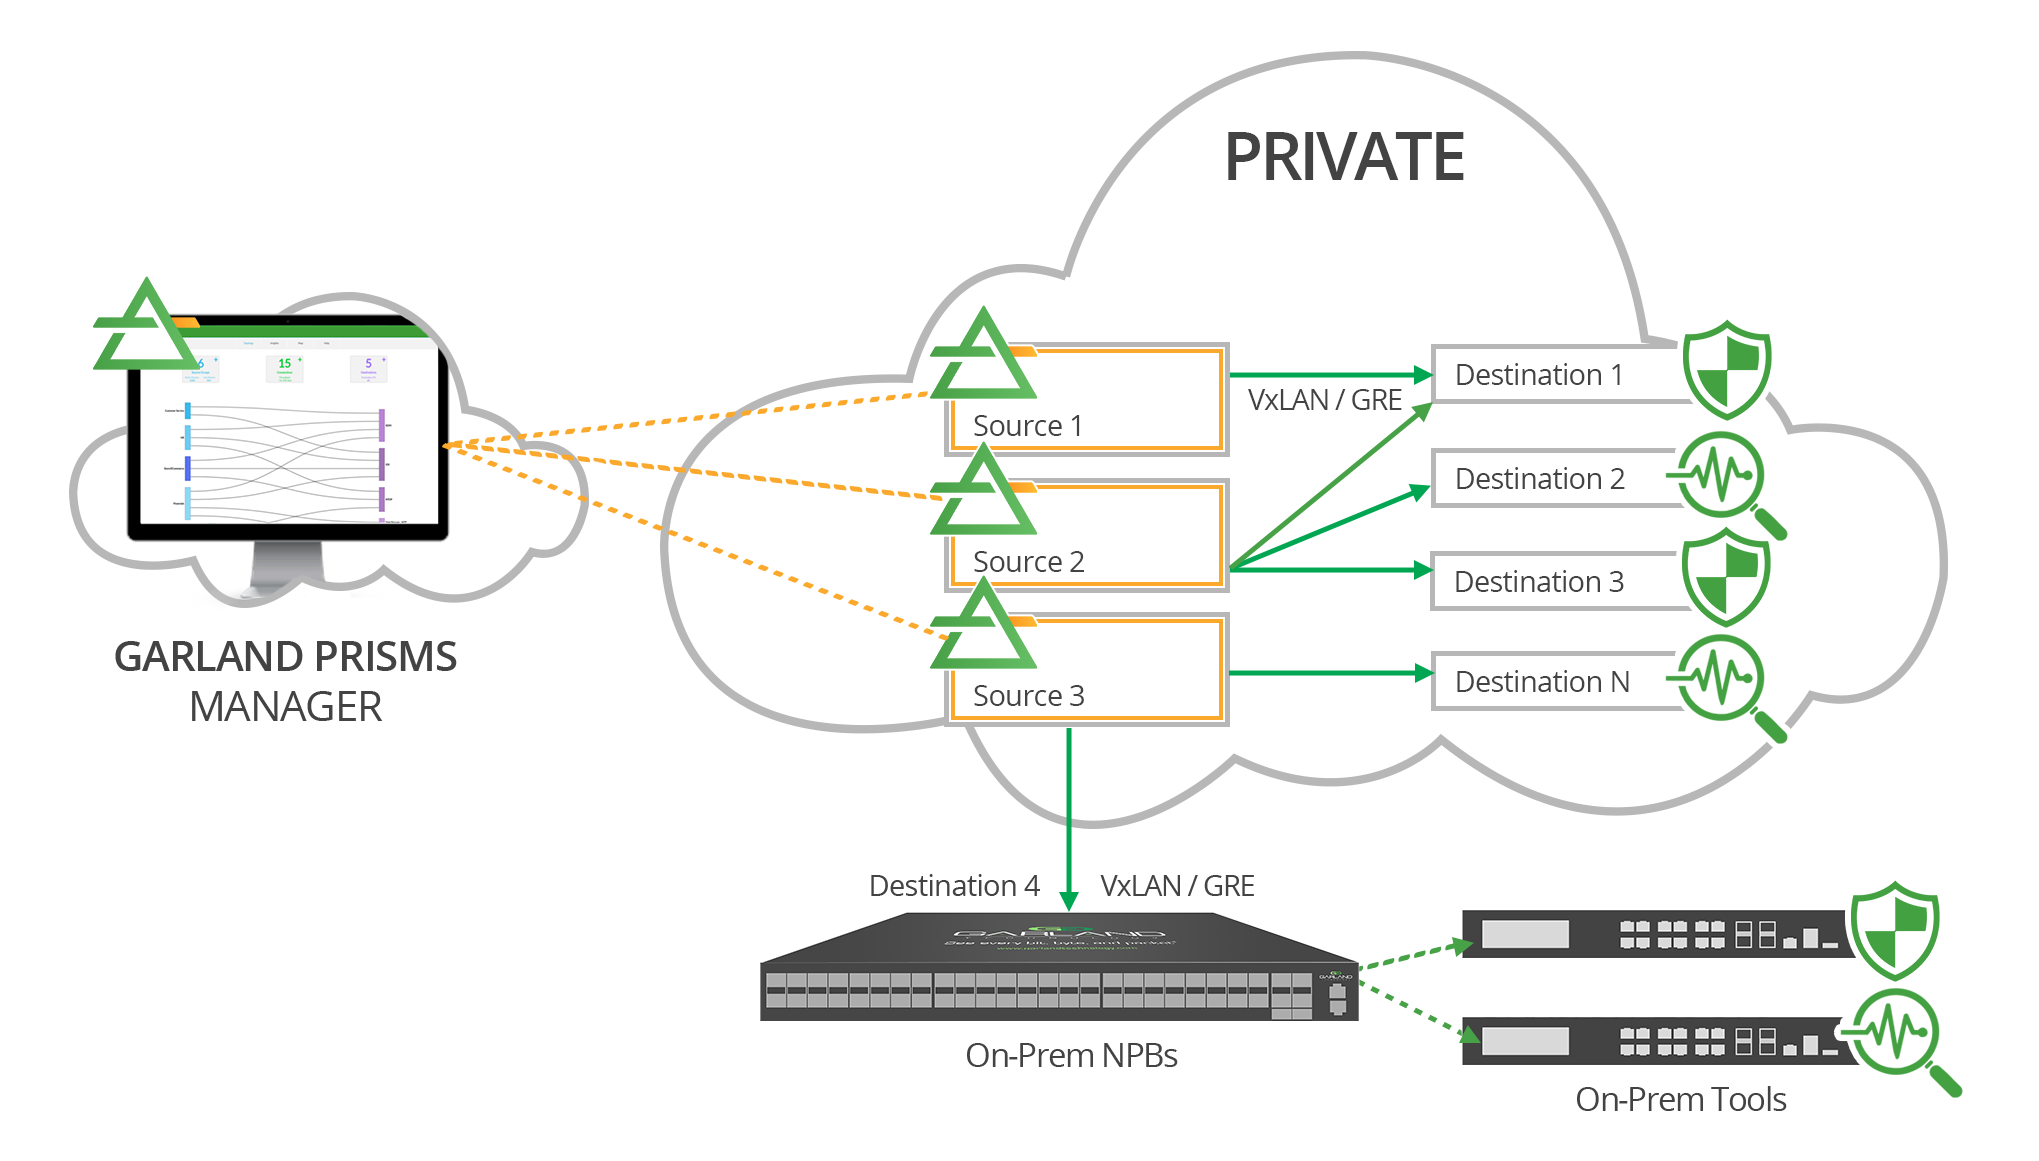 Private Cloud environment